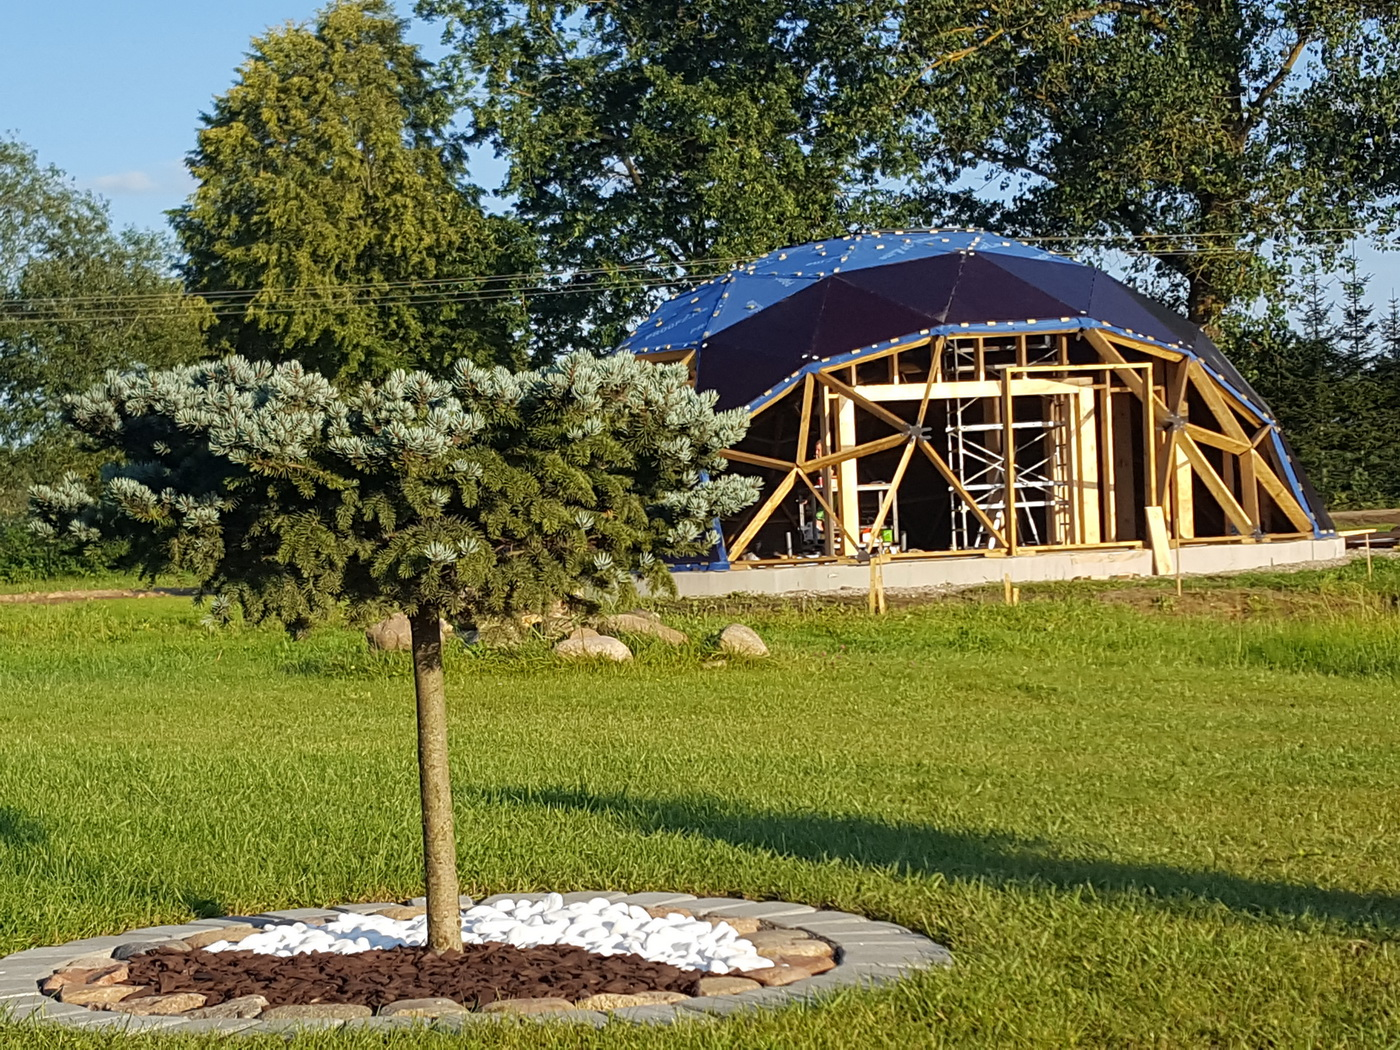 Wooden guest geodesic house 125m2 with sauna Ø12m, Širvintai , Lithuania